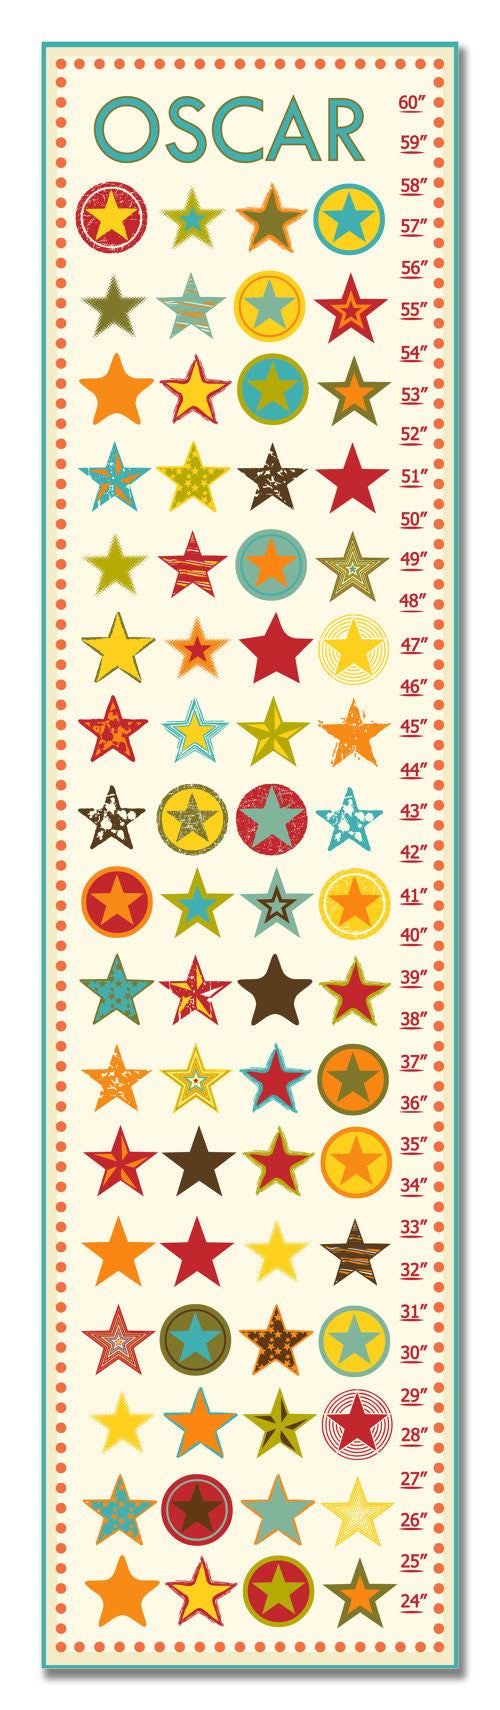 Stars Personalized Growth Chart